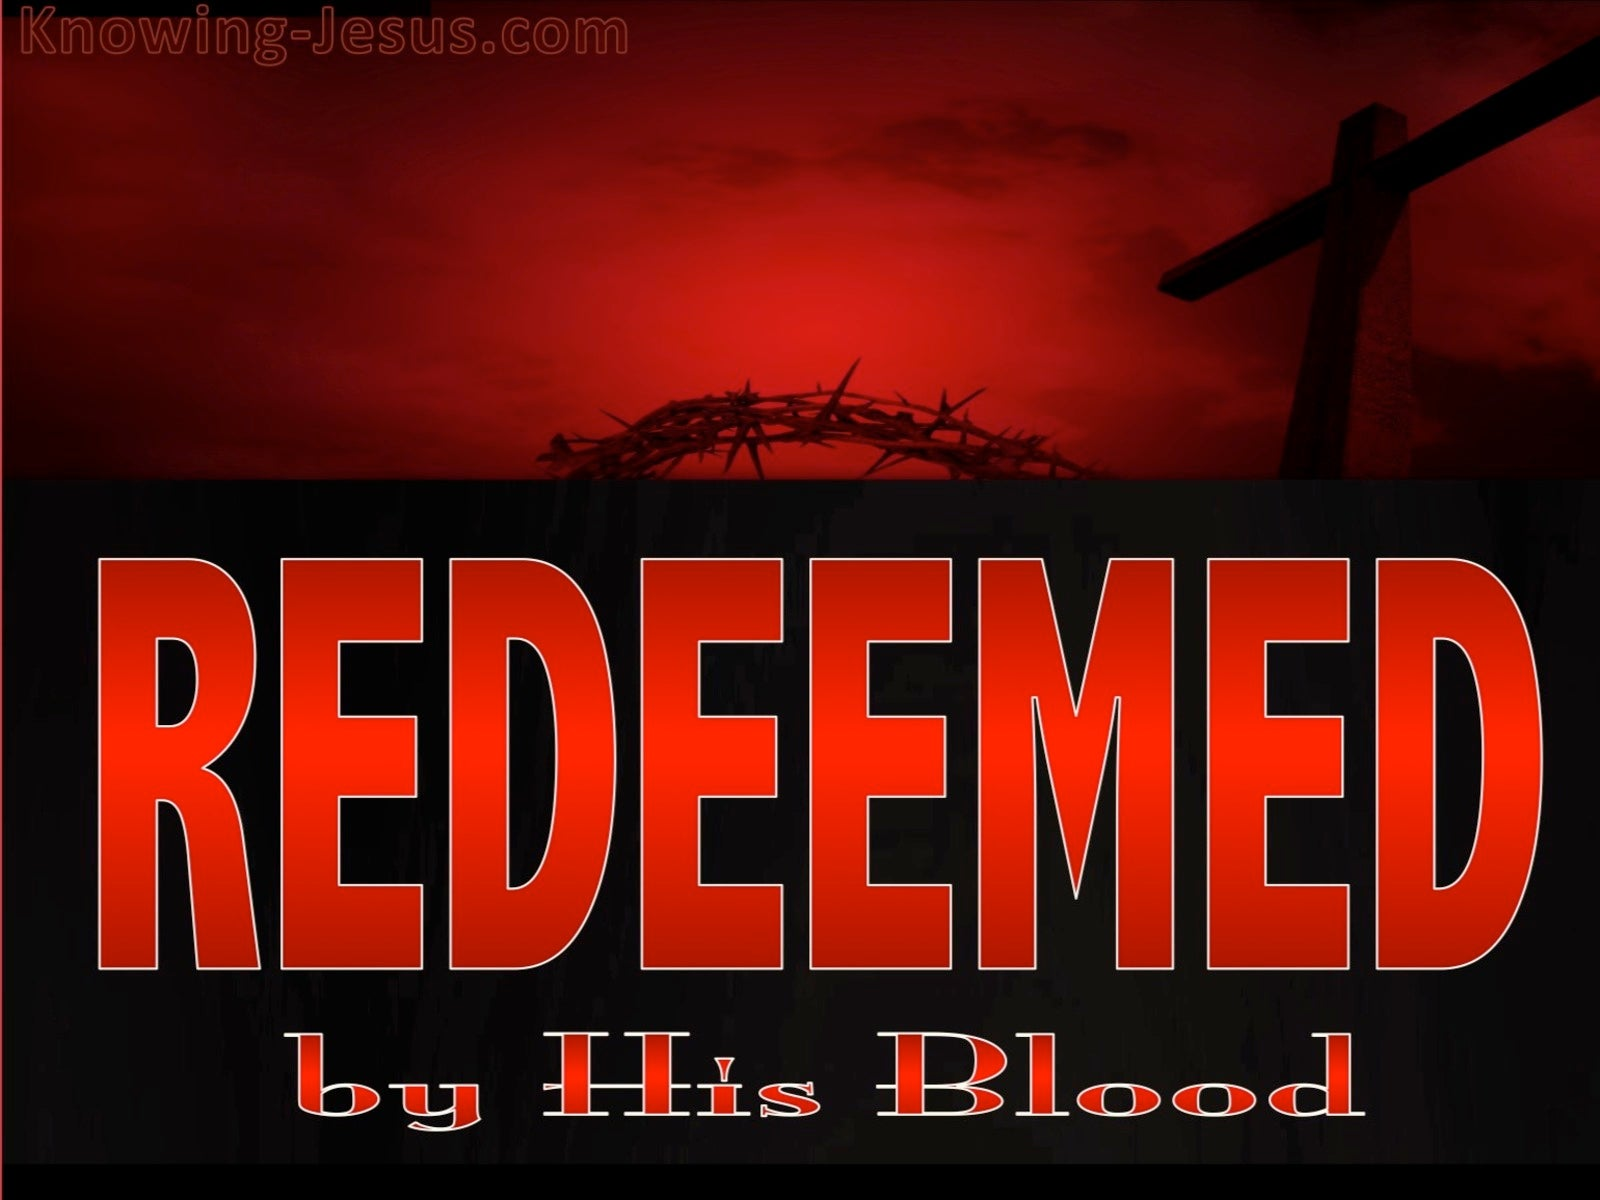 Ephesians 1:7 Redeemed By His Blood (red)